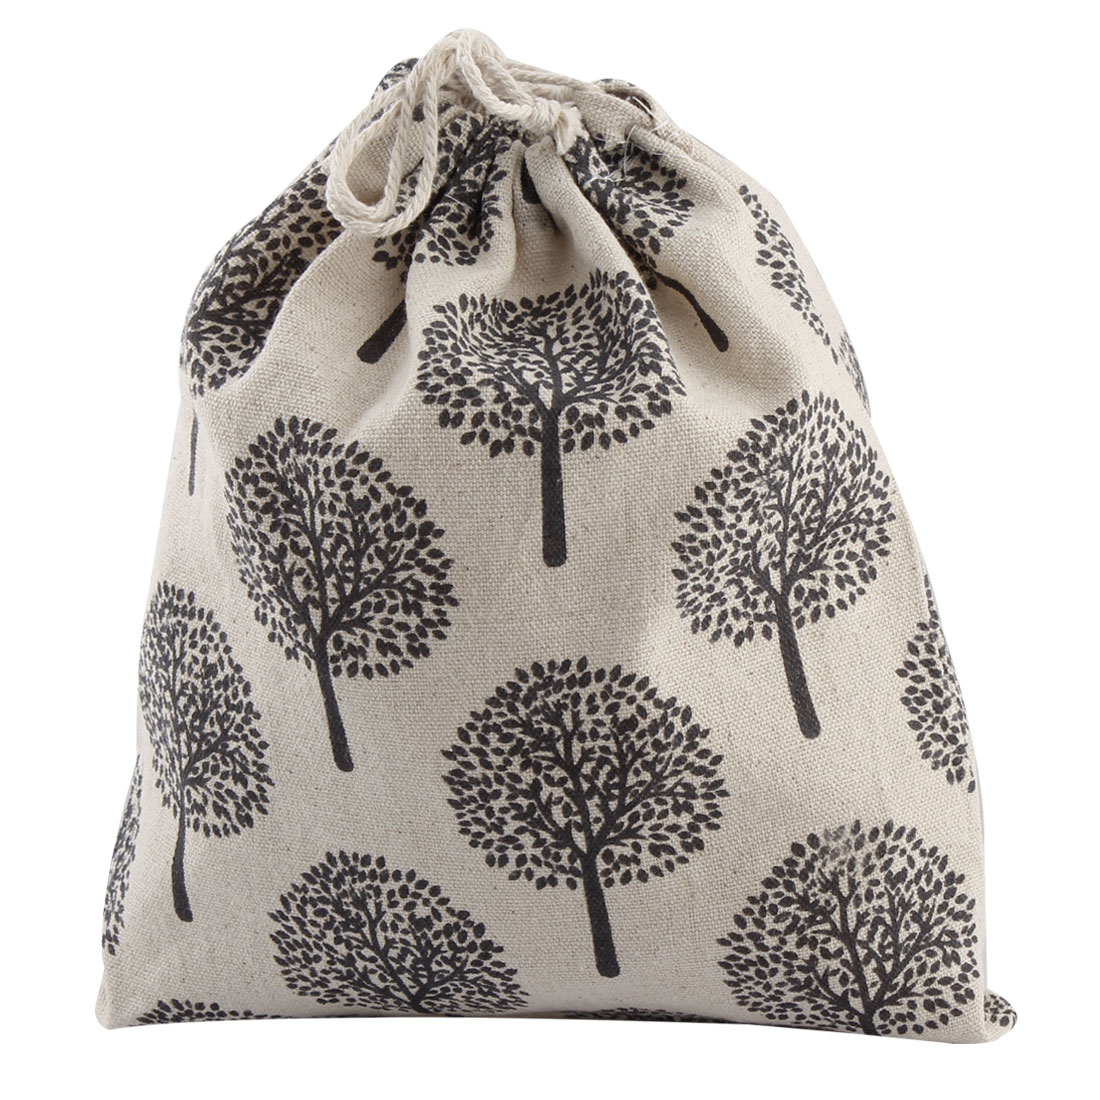 Household Cotton Blend Tree Pattern Clothes Socks Drawstring Pouch Beige Black